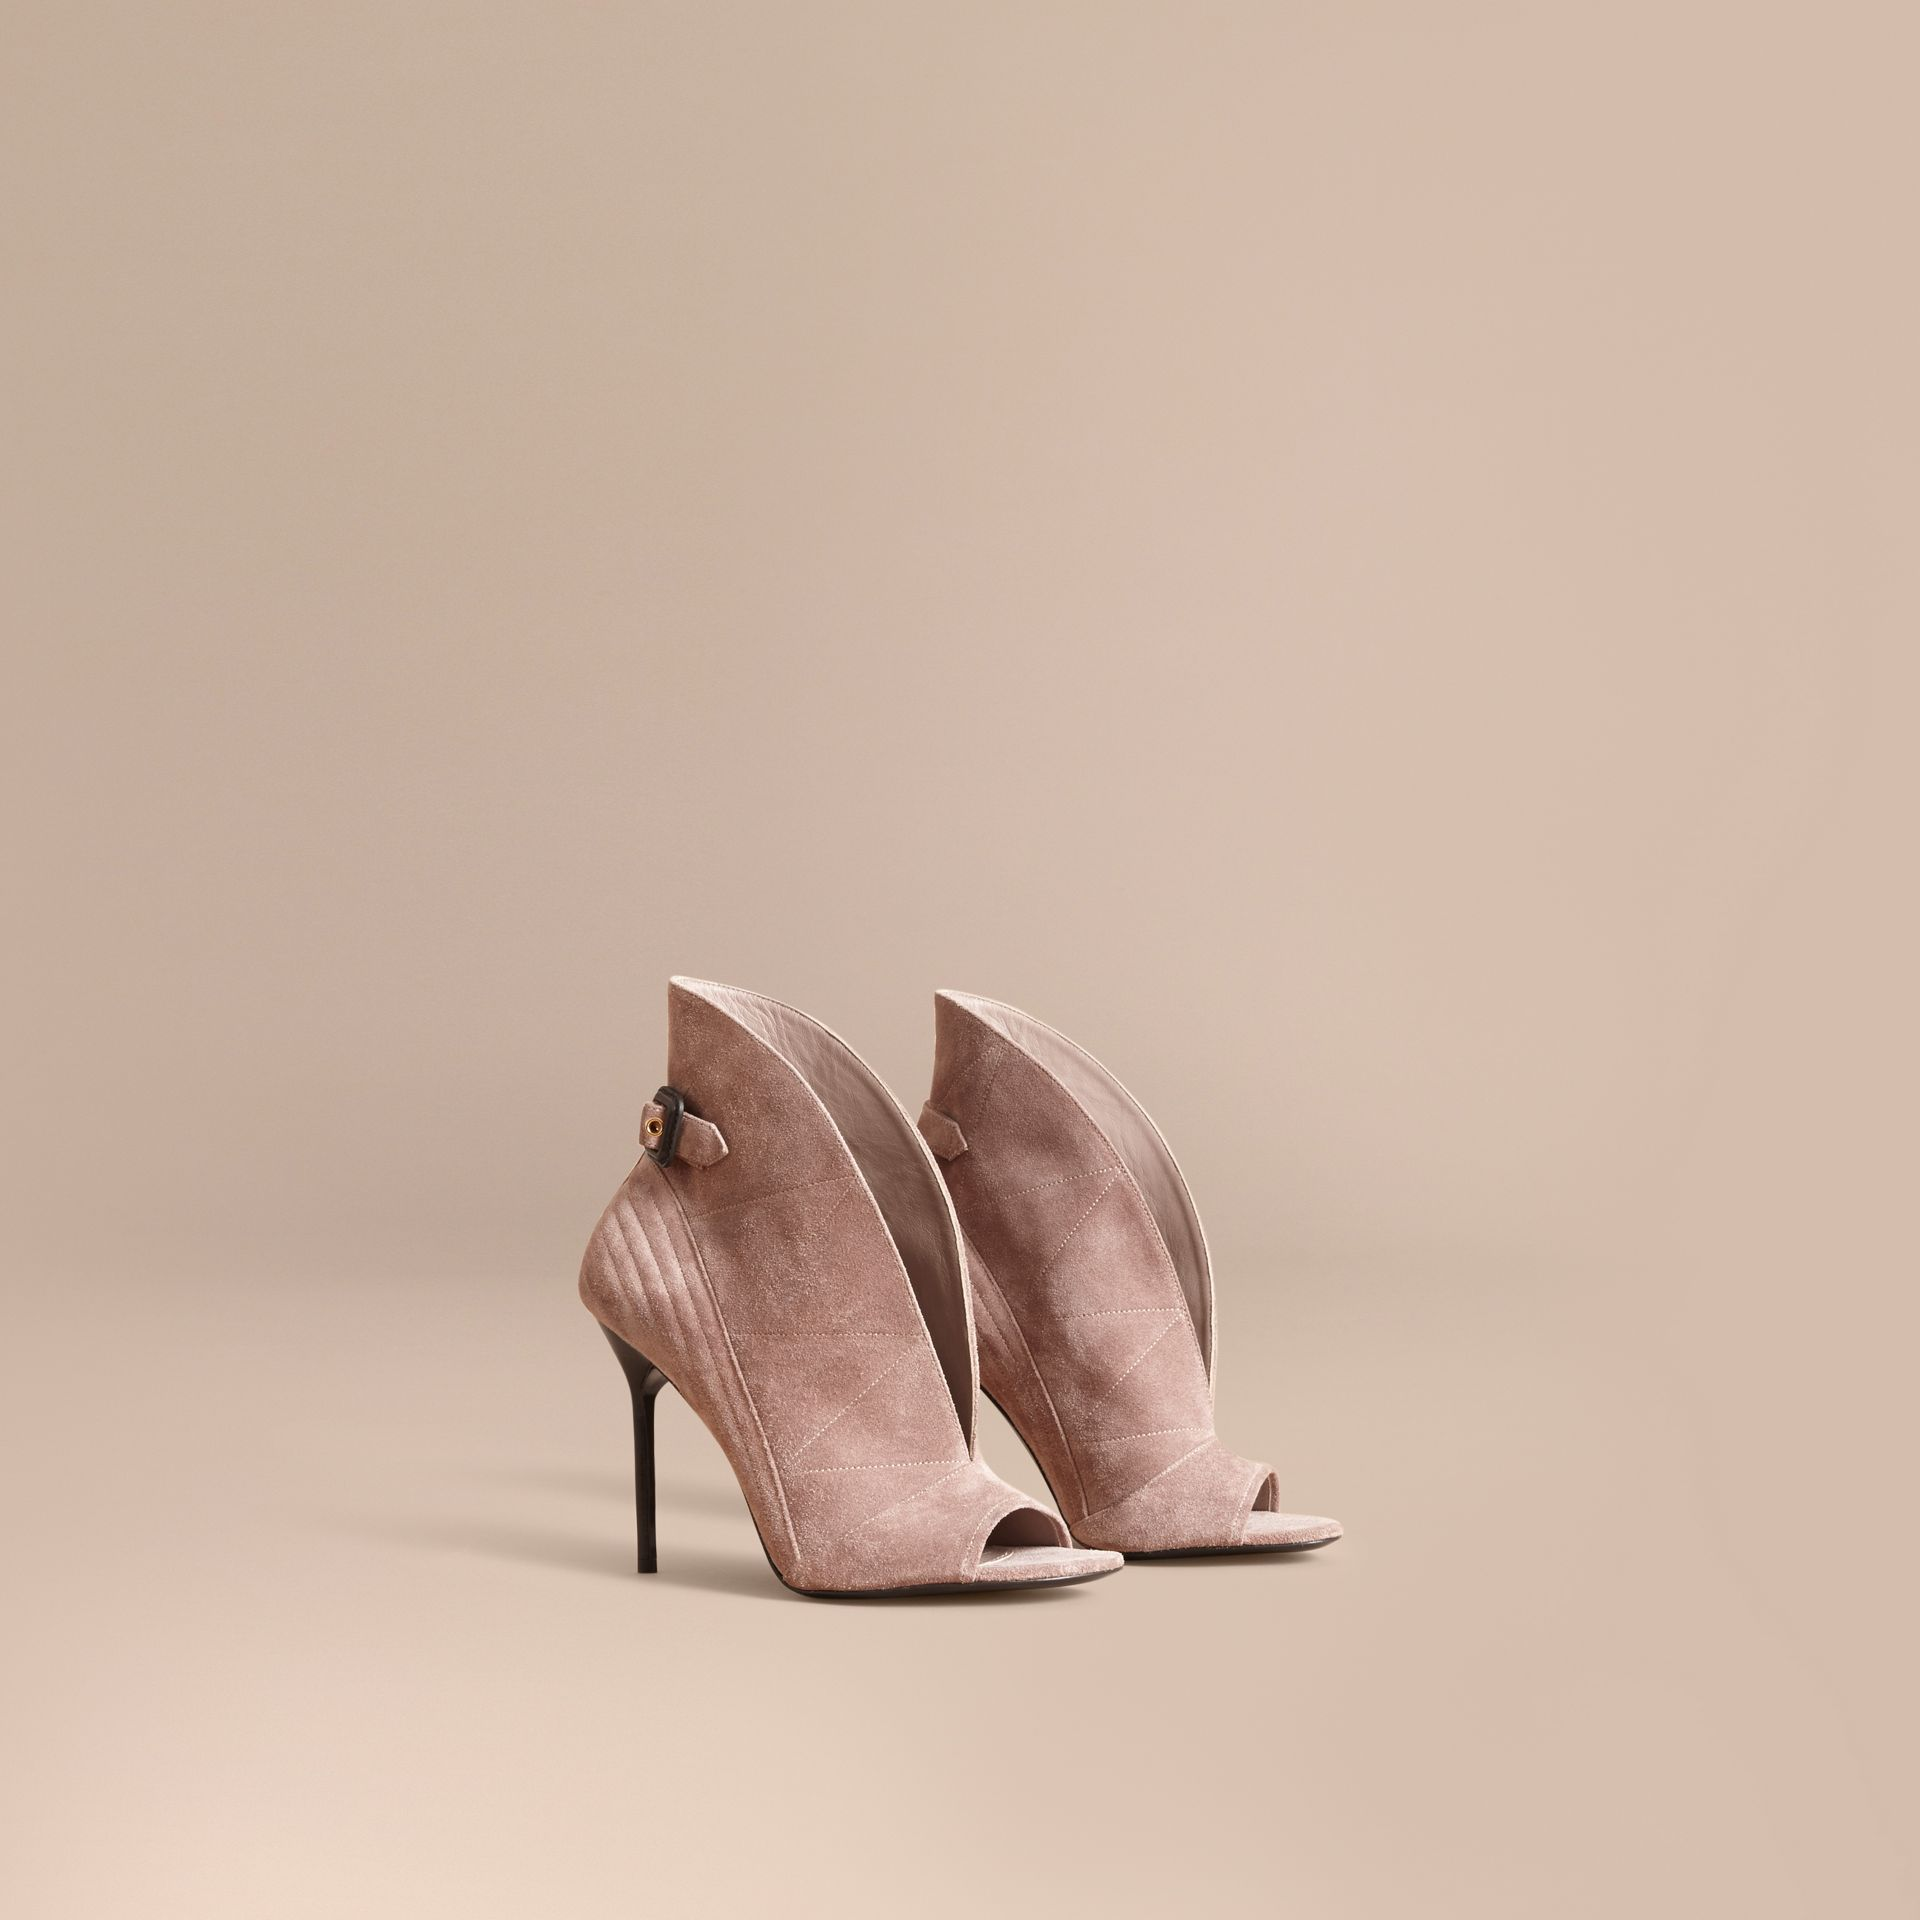 Buckle Detail Suede Peep-toe Ankle Boots in Ivory Pink - Women | Burberry Hong Kong - gallery image 1